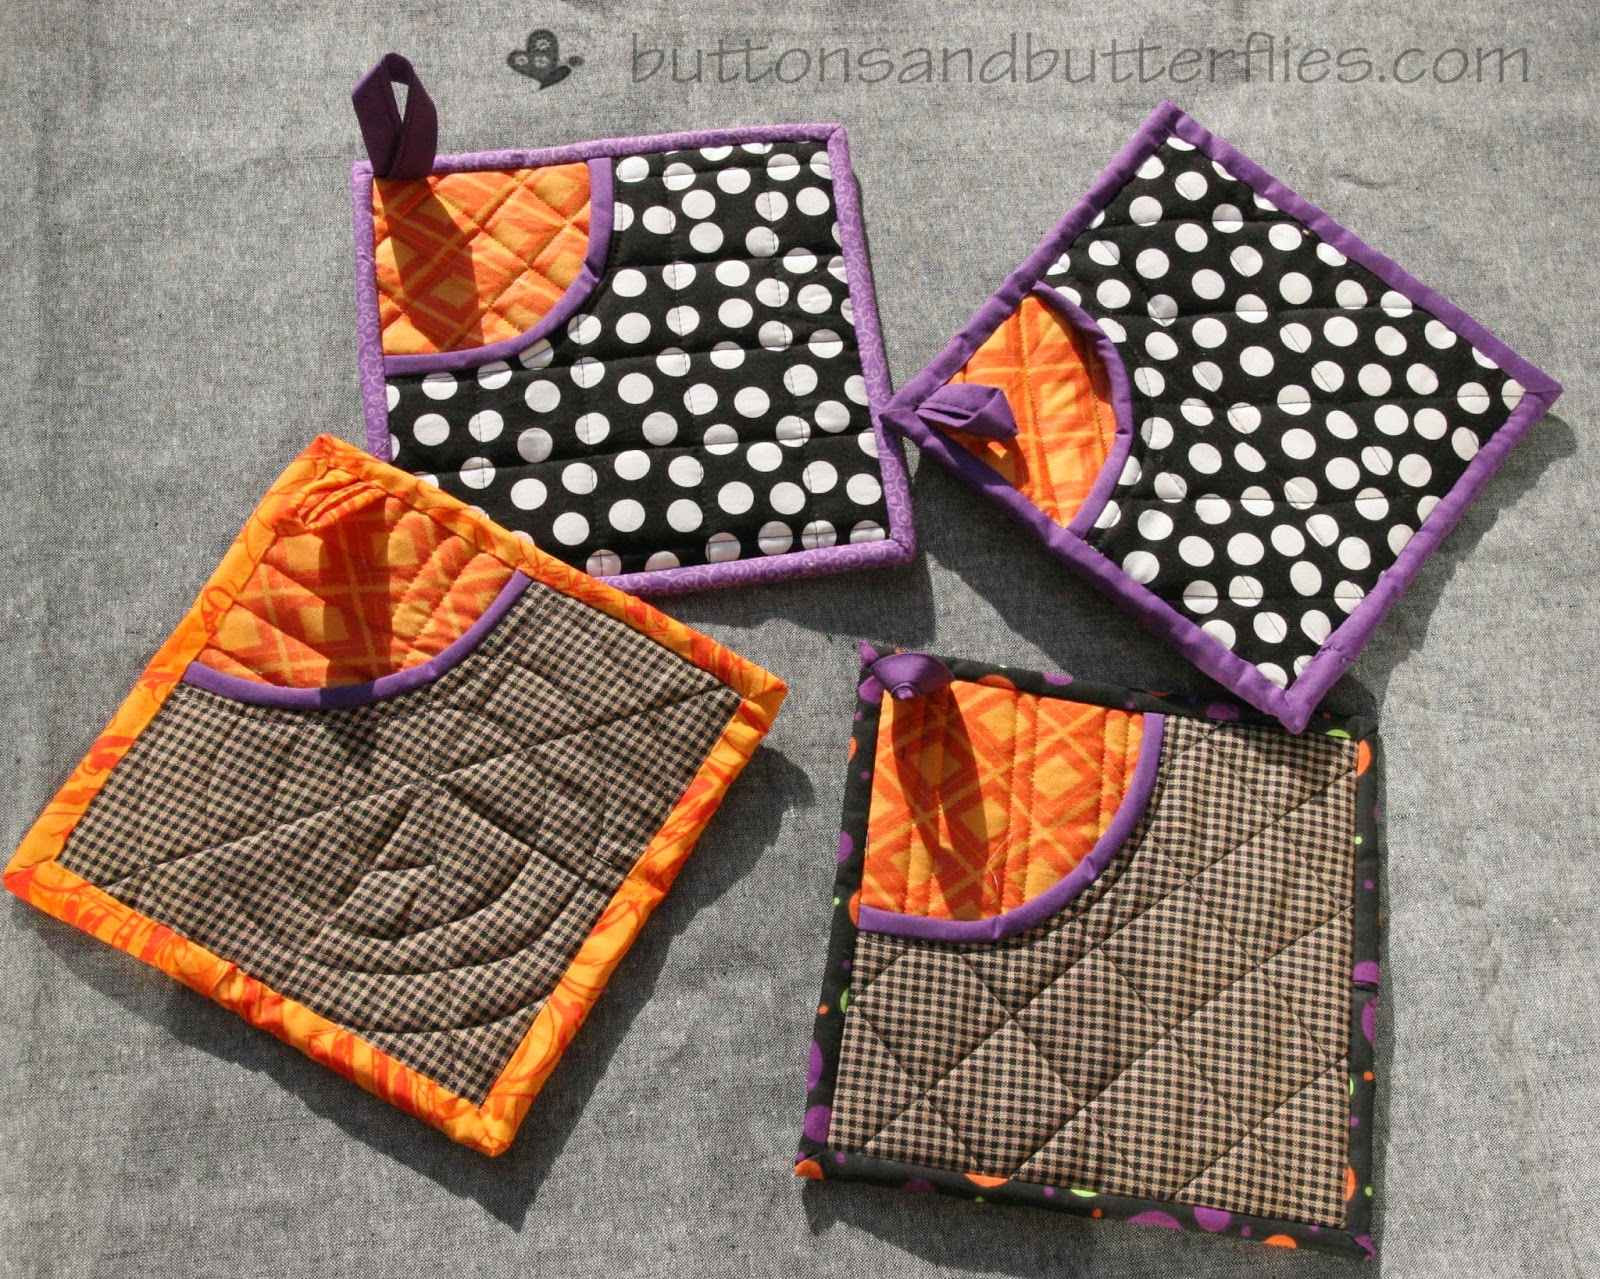 Buttons and Butterflies: Potholders Galore : quilted potholders patterns - Adamdwight.com